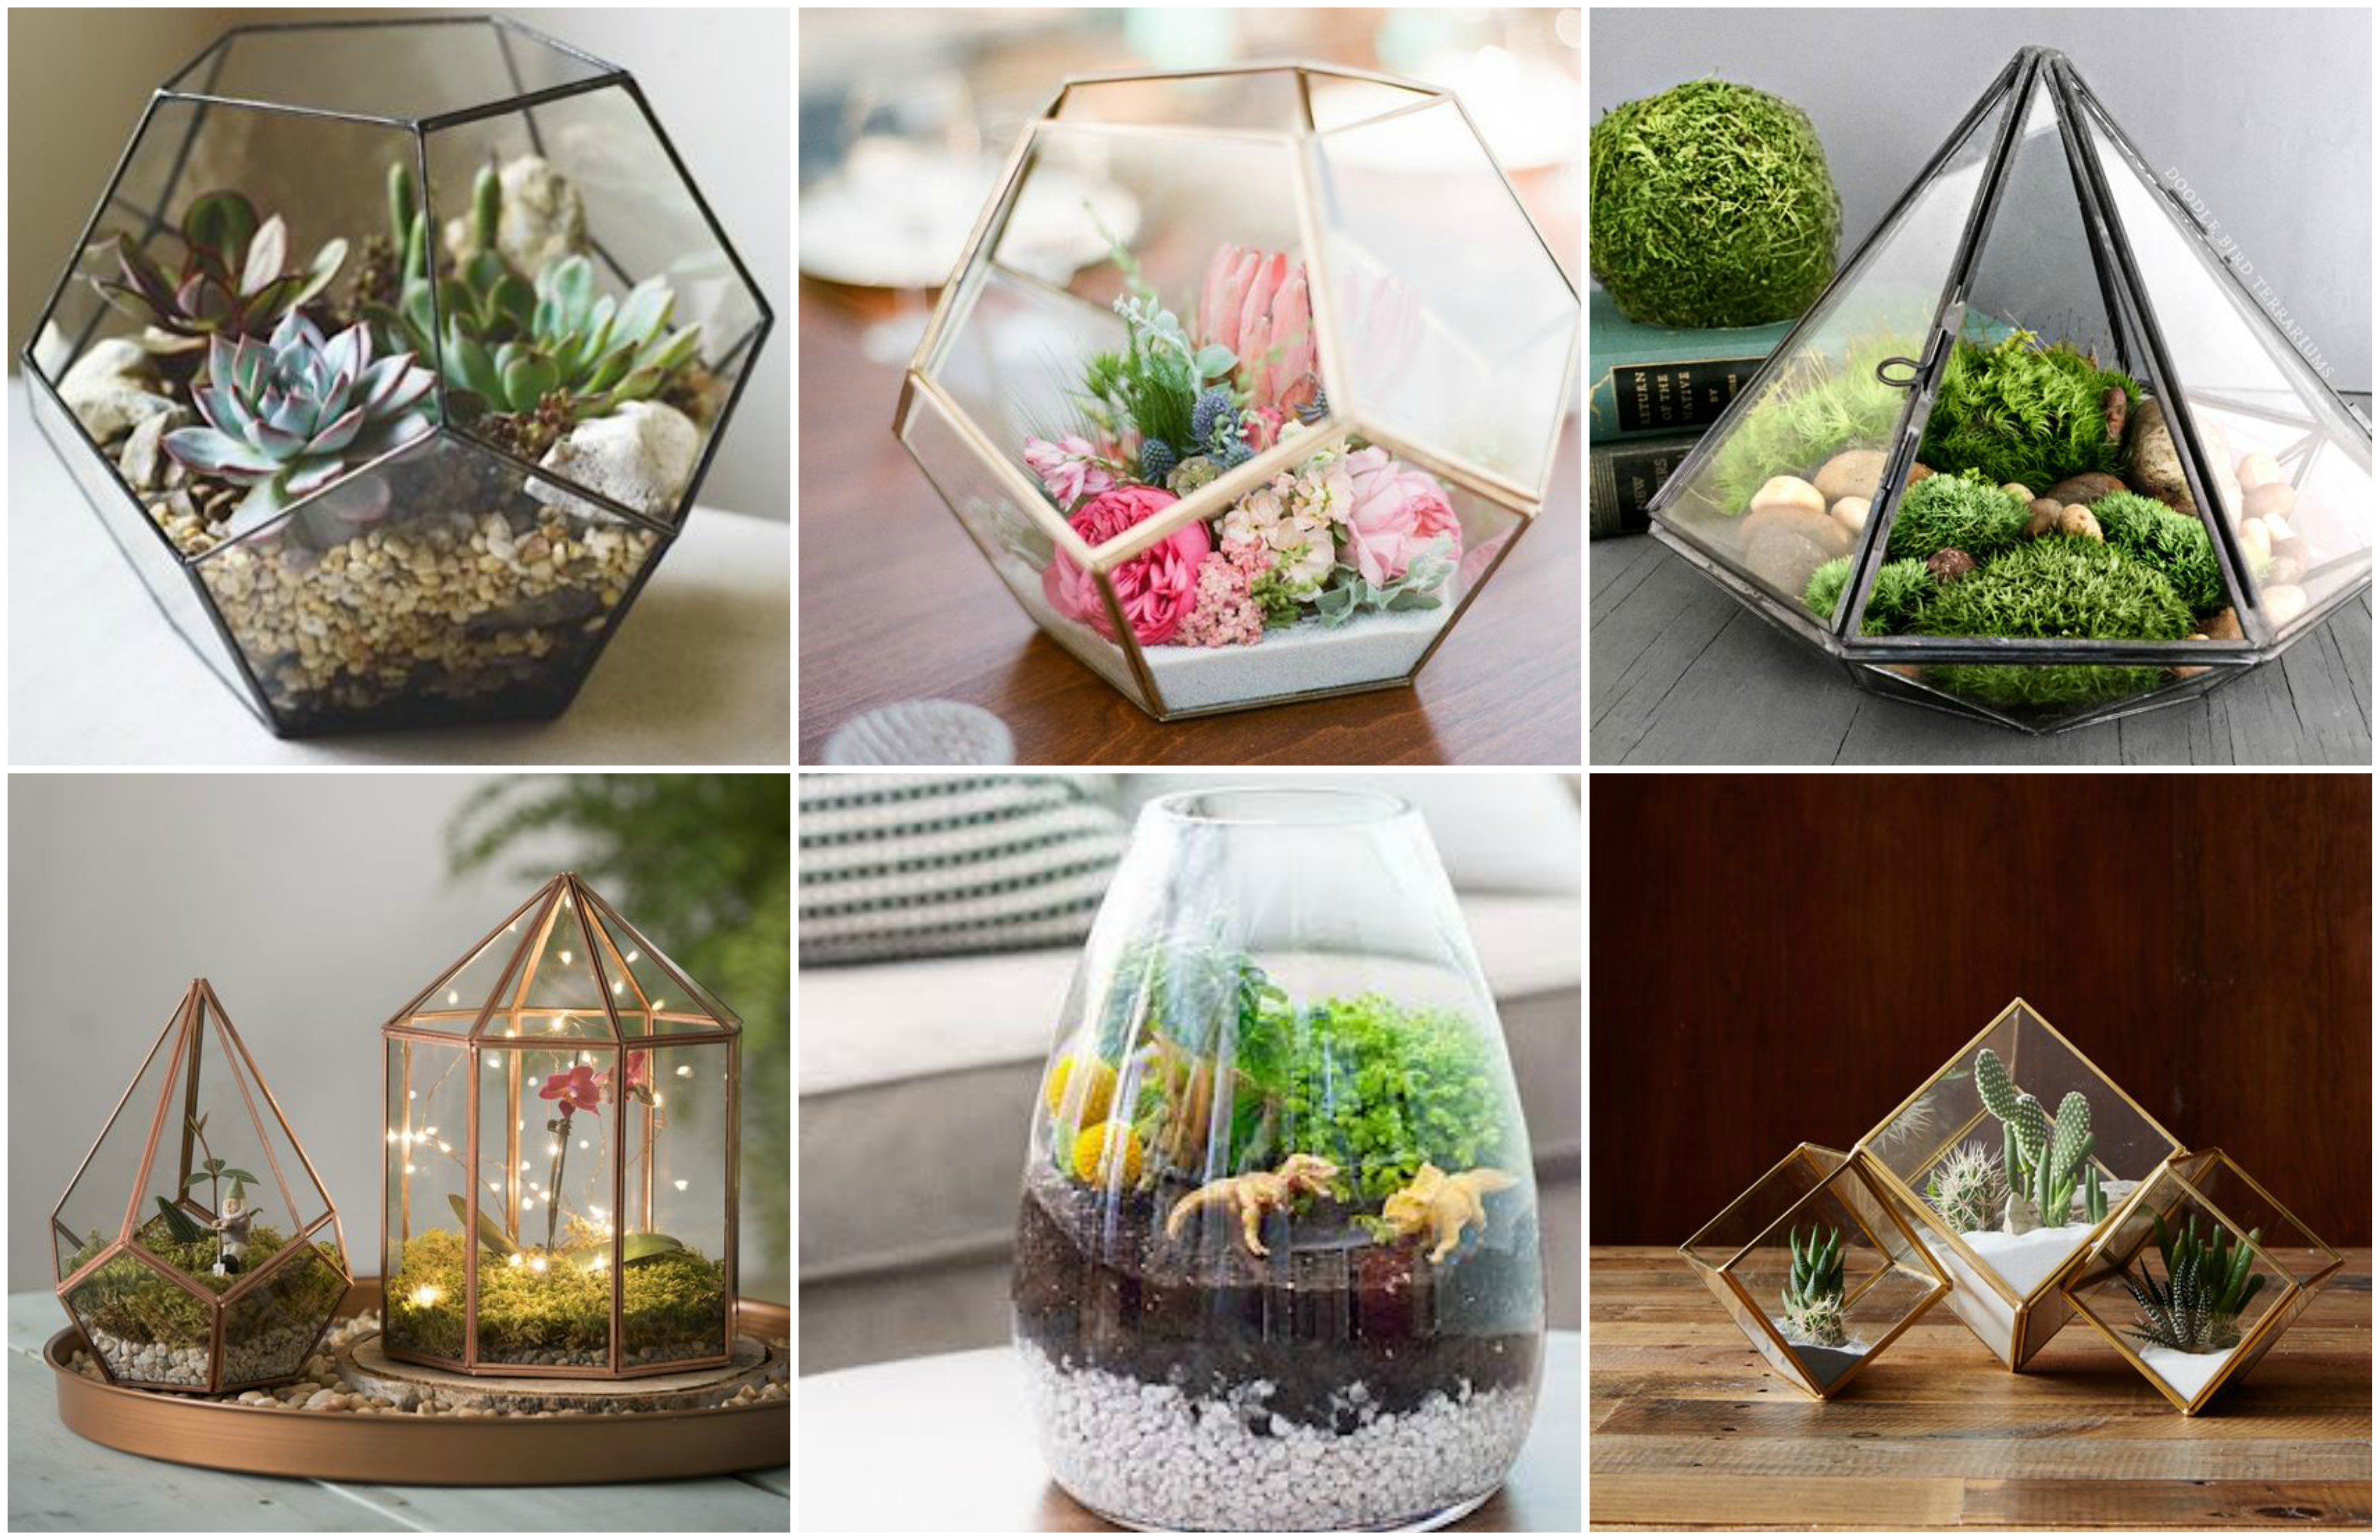 zauberhafte welt im glas diy terrarium machen. Black Bedroom Furniture Sets. Home Design Ideas